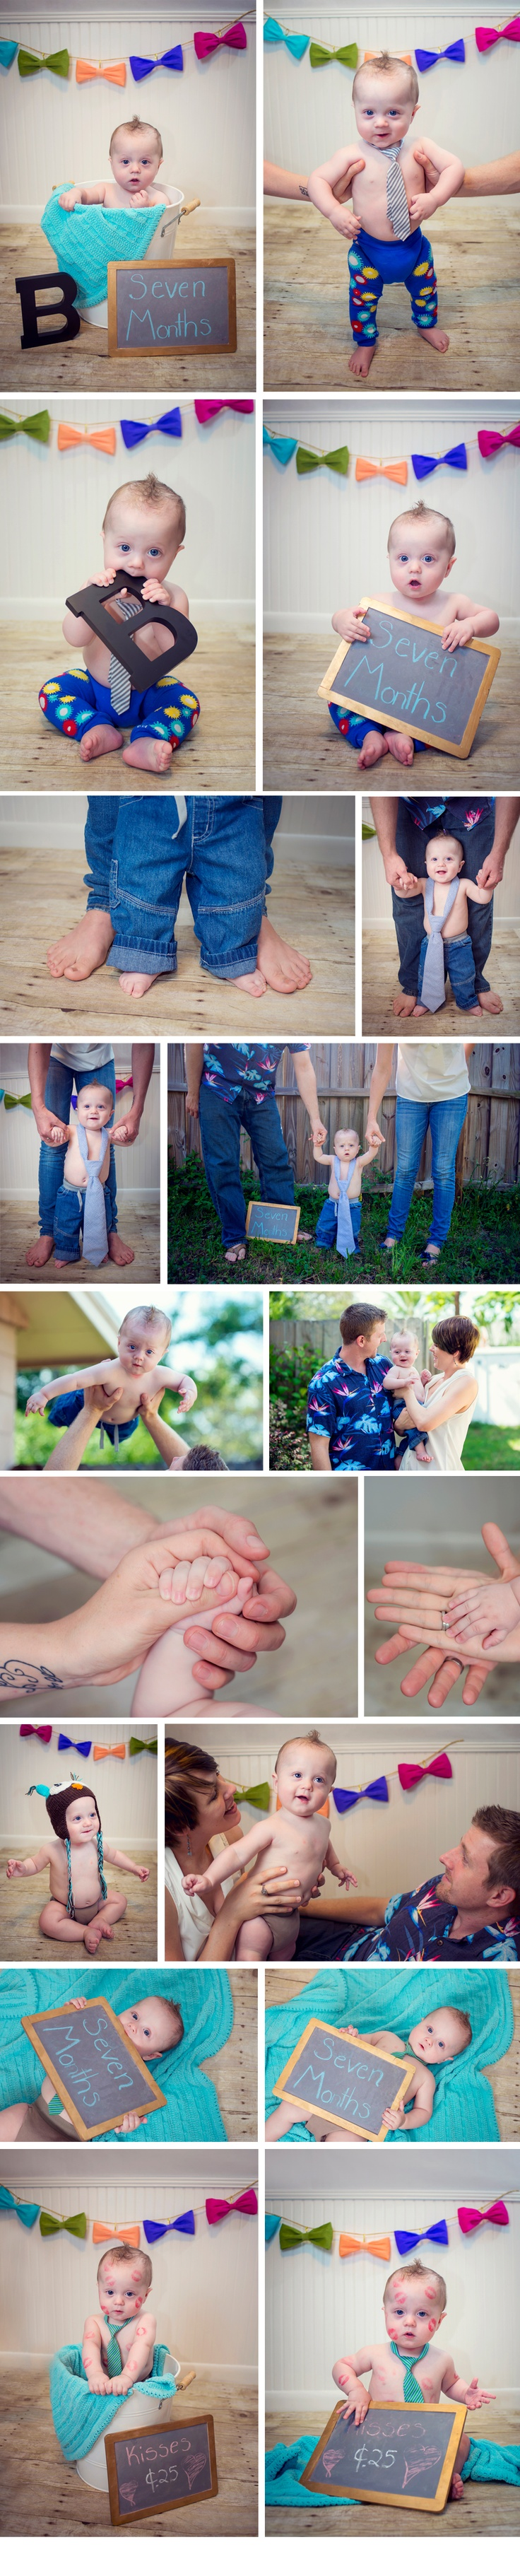 Professional toddler portraits in home studio Florida